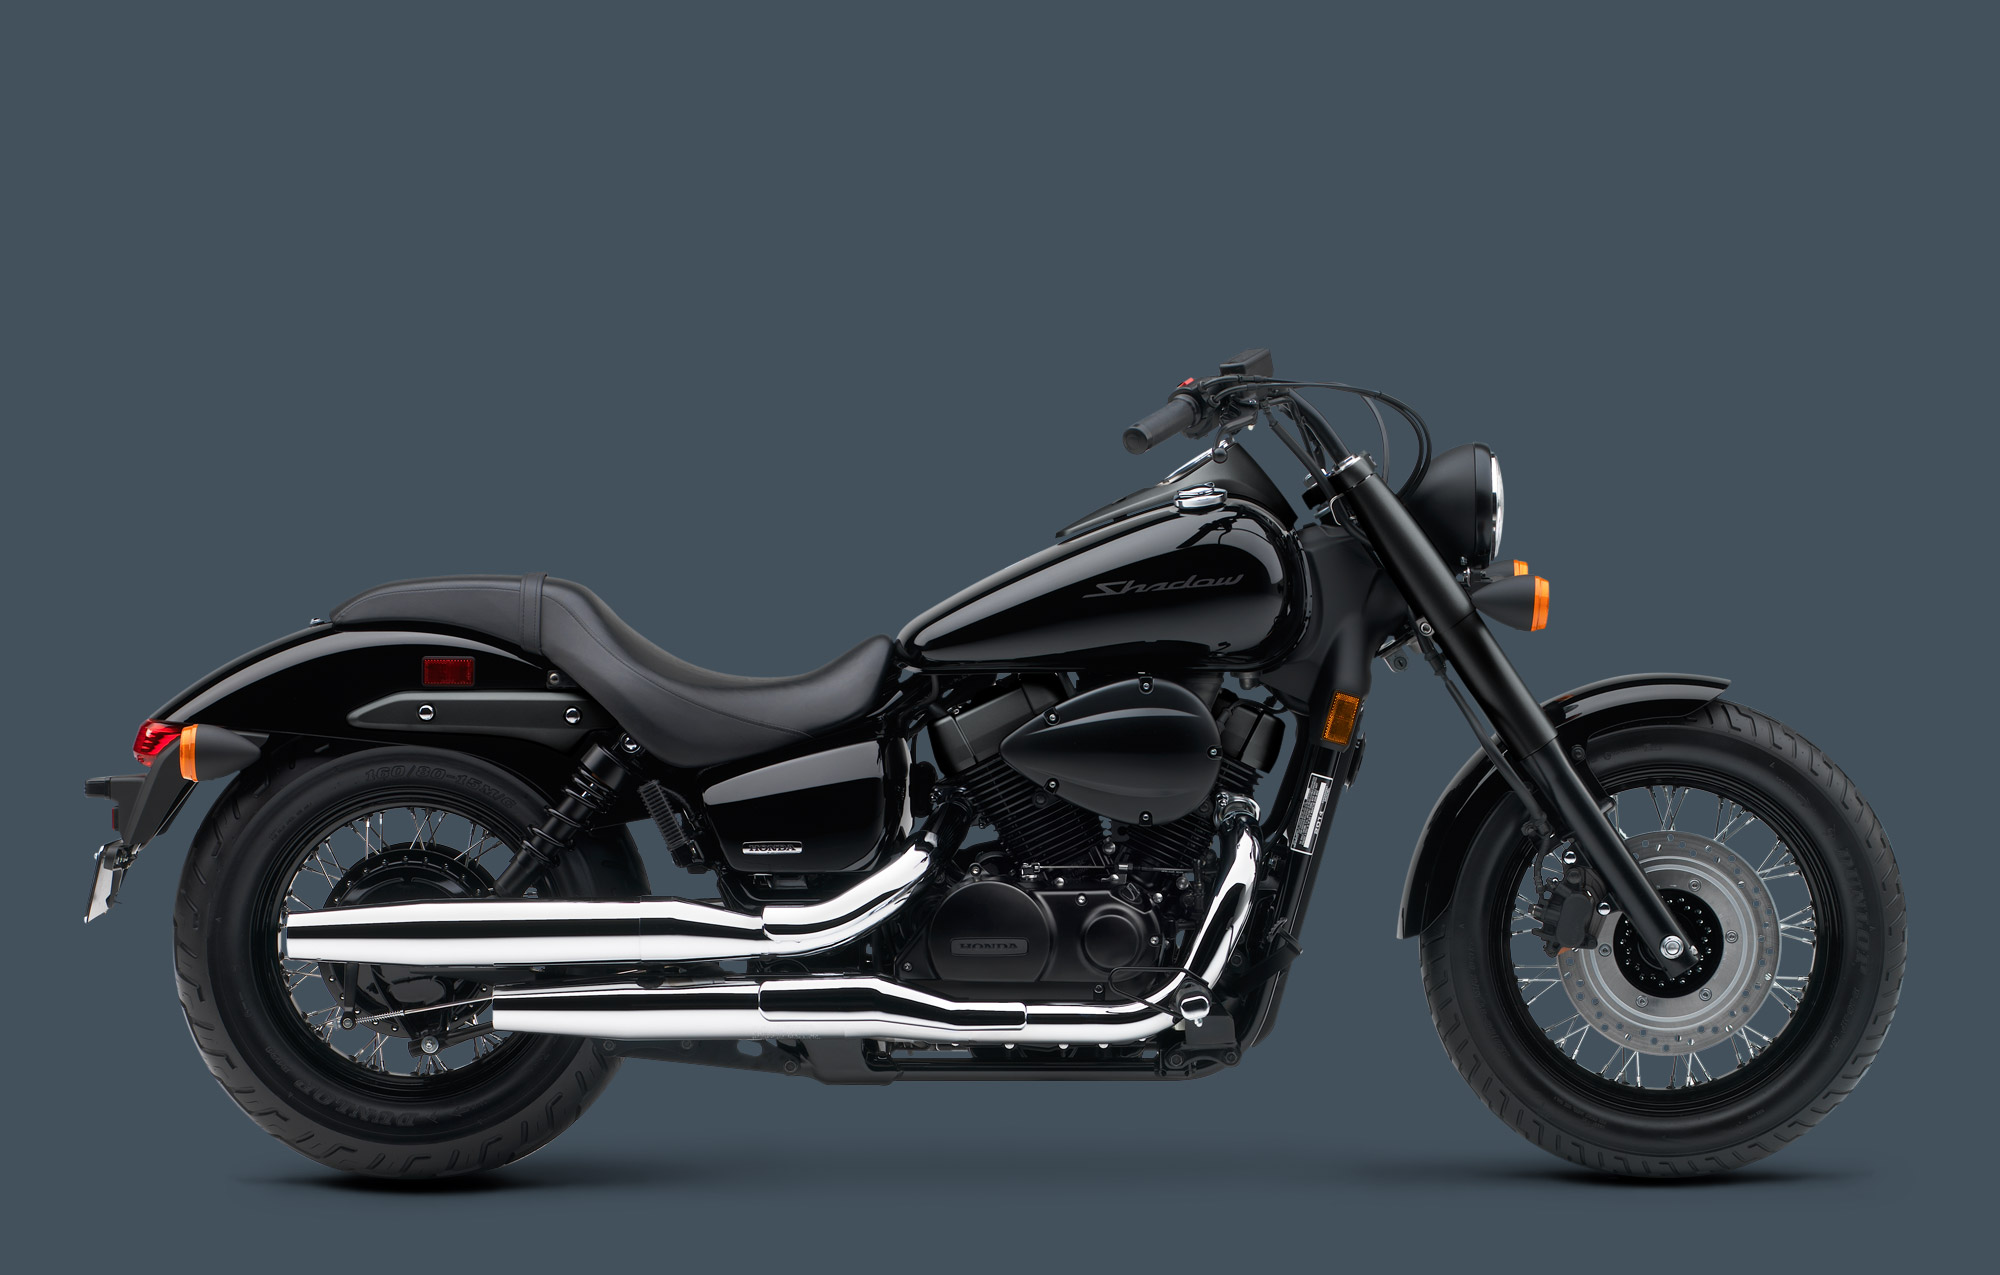 2015 Honda Rebel >> 2014 Honda Shadow Phantom, a Middleweight Cruiser We Like - autoevolution